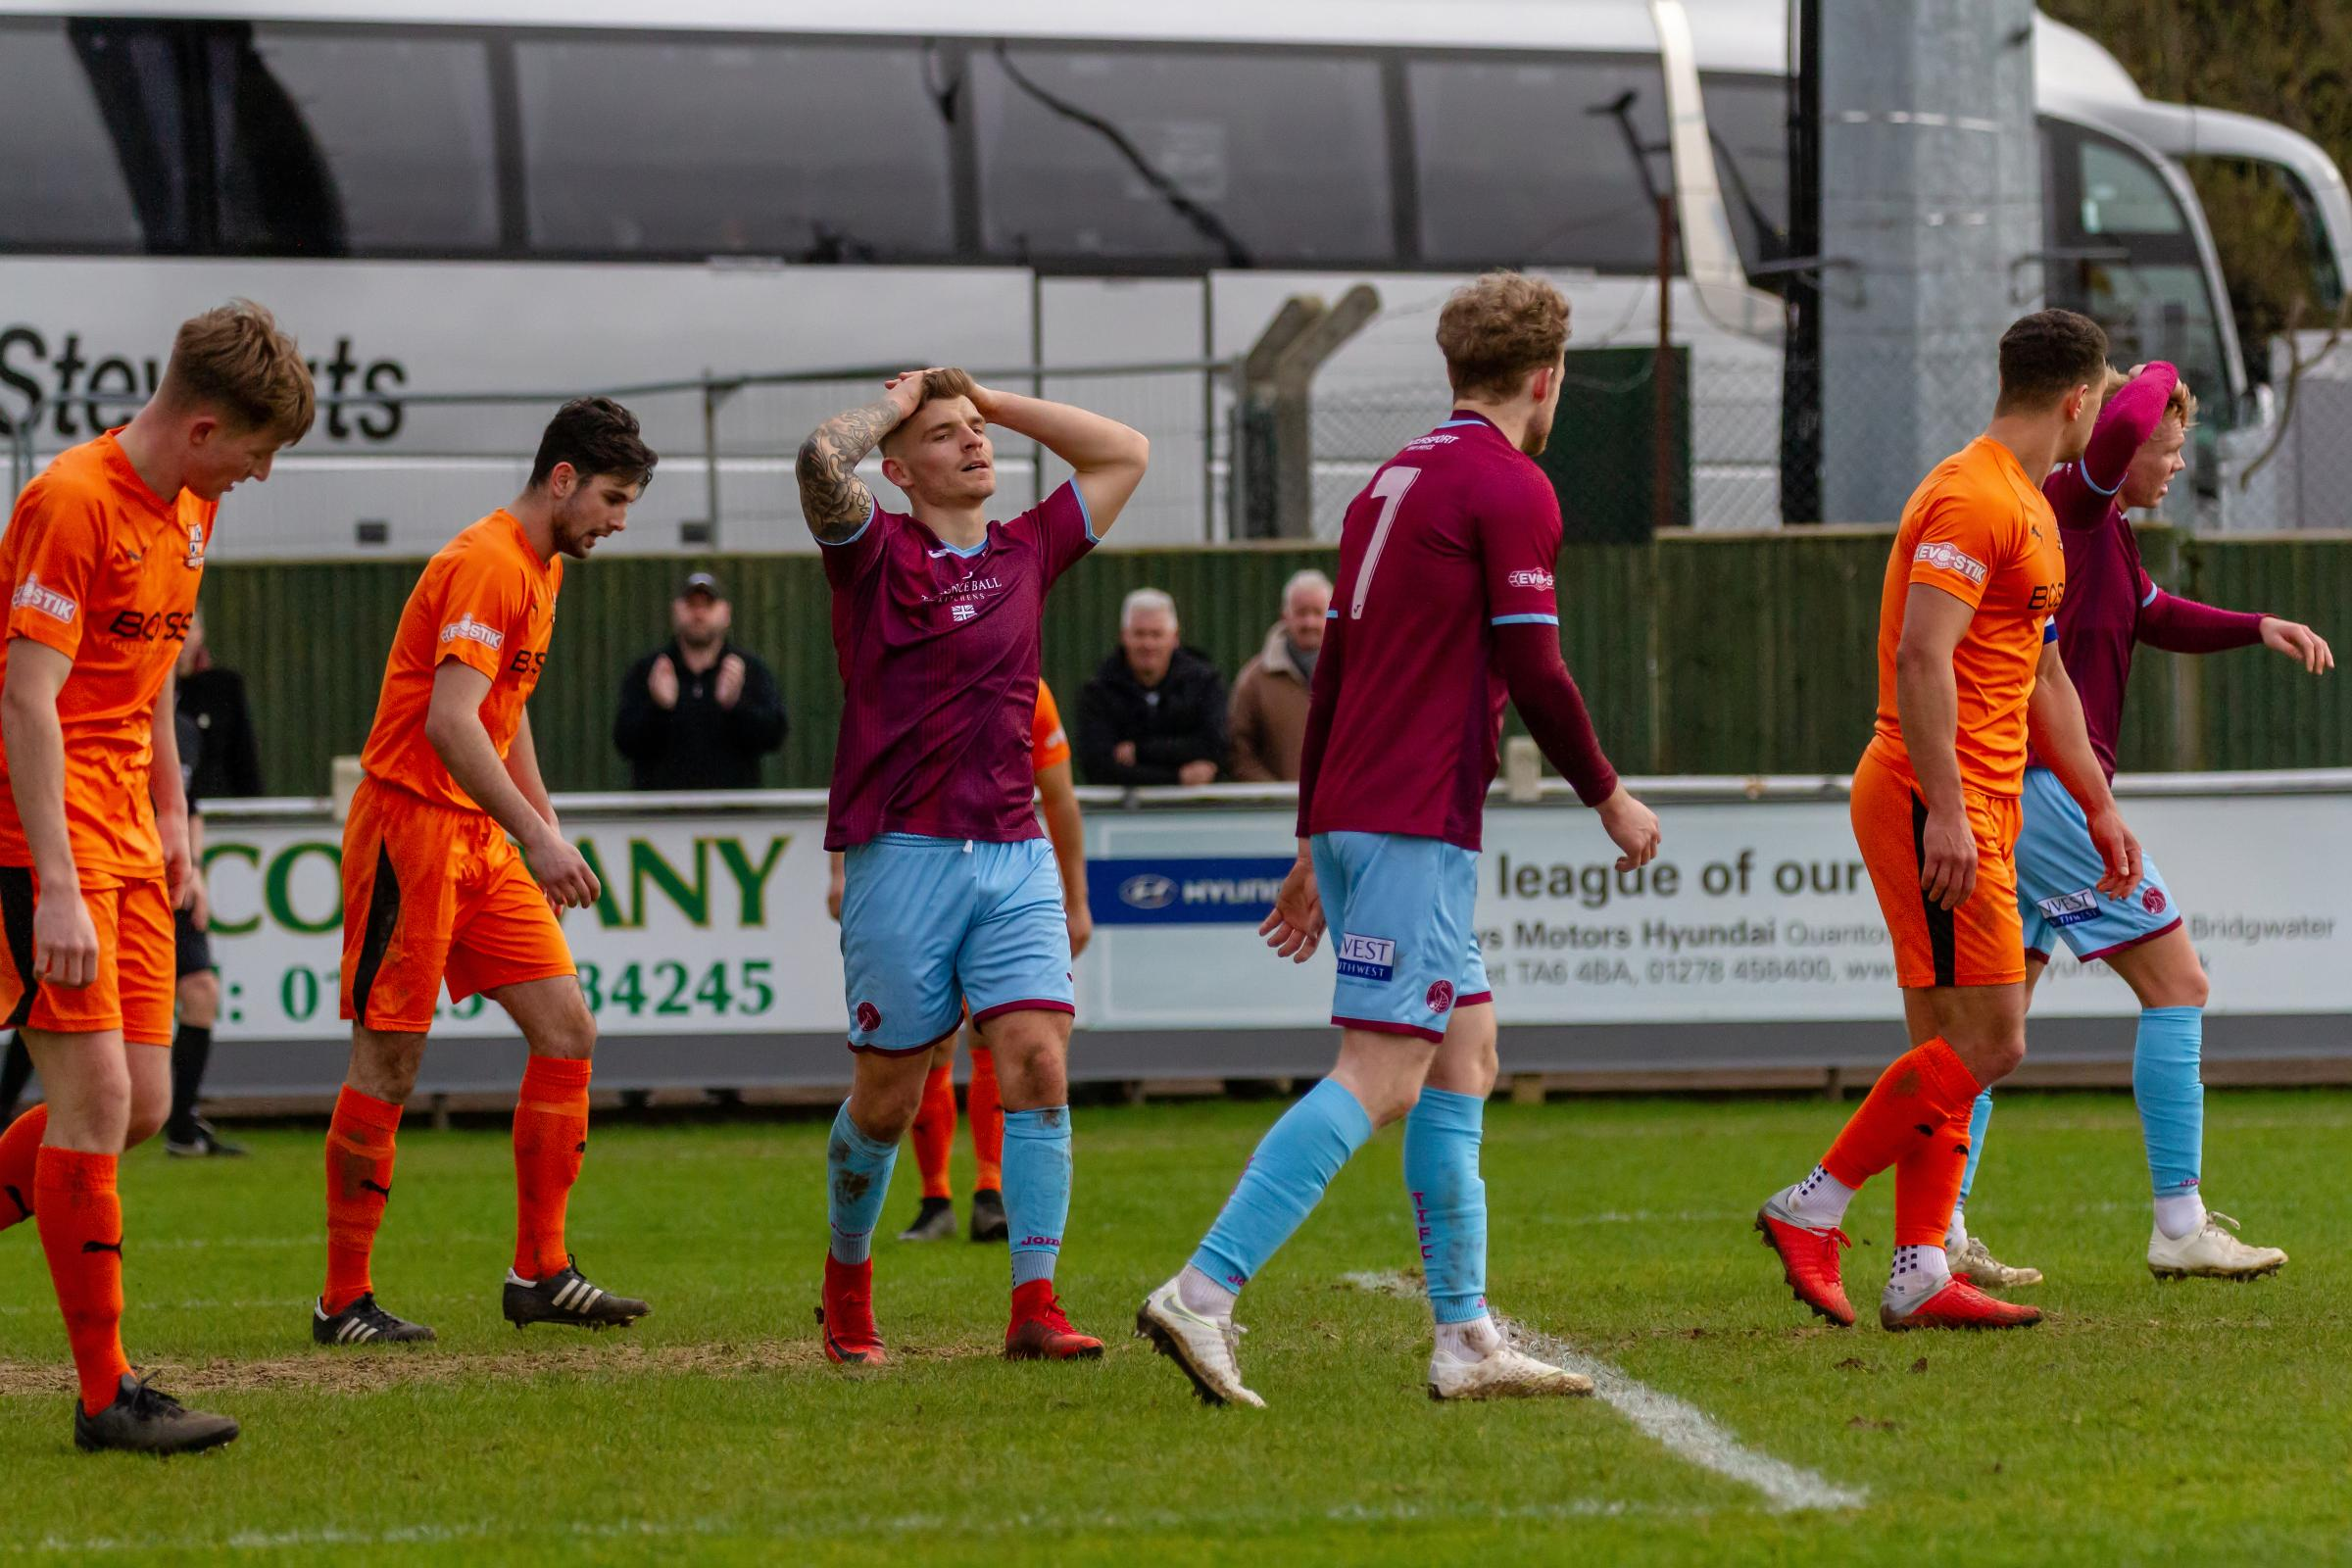 FRUSTRATED: Andrew Neal reacts to a missed chance in last weekend's 2-2 draw against Harltey Wintney. Pic: Ashley Harris